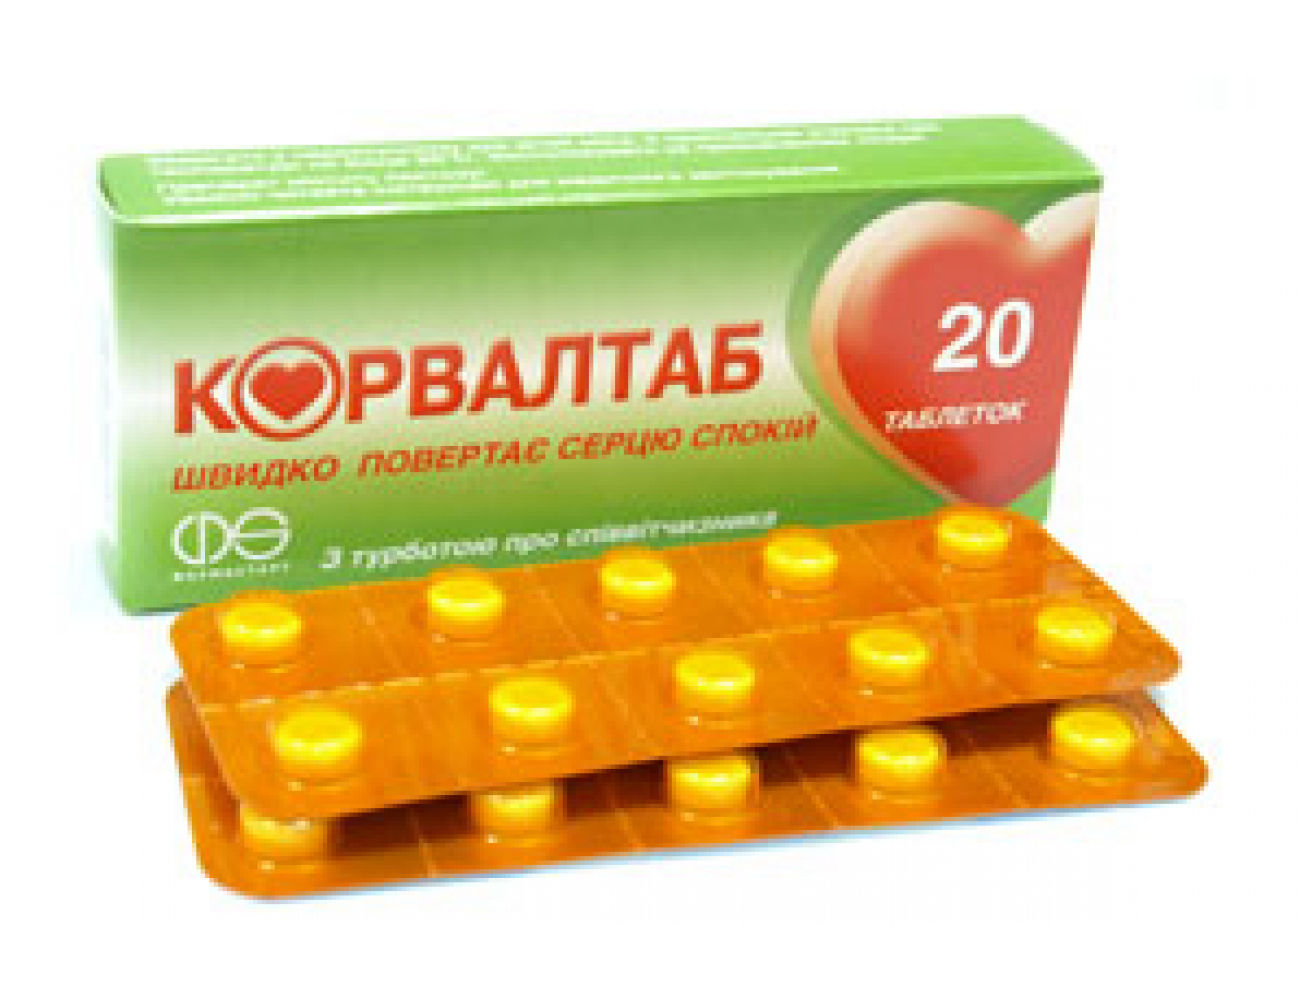 Corvaltab Tablets: instructions for use, description, composition and reviews 50